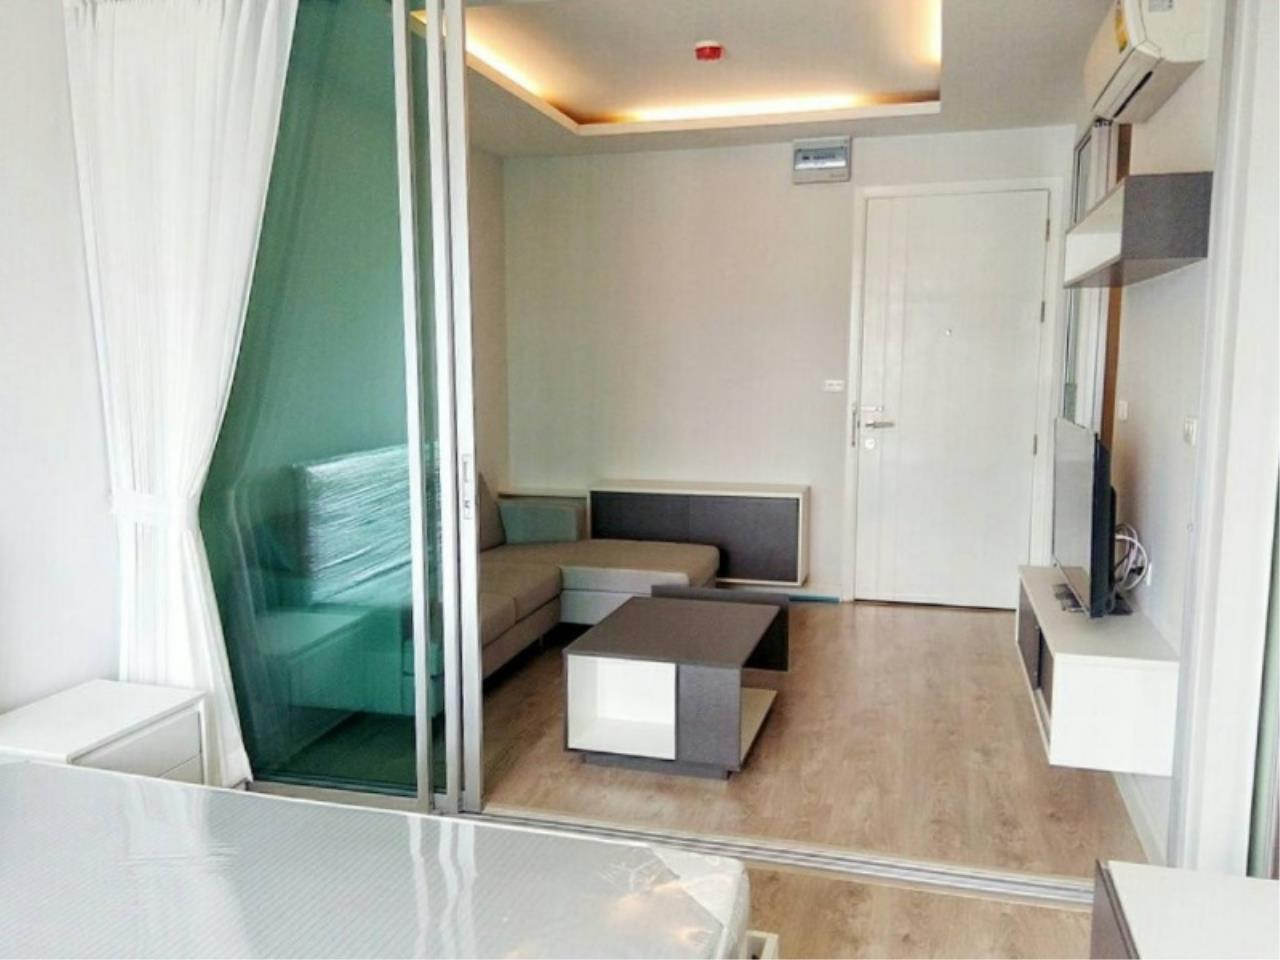 Century21 Skylux Agency's Bridge Sathorn-Narathiwas / Condo For Sale / 1 Bedroom / 33.6 SQM / BTS Chong Nonsi / Bangkok 2